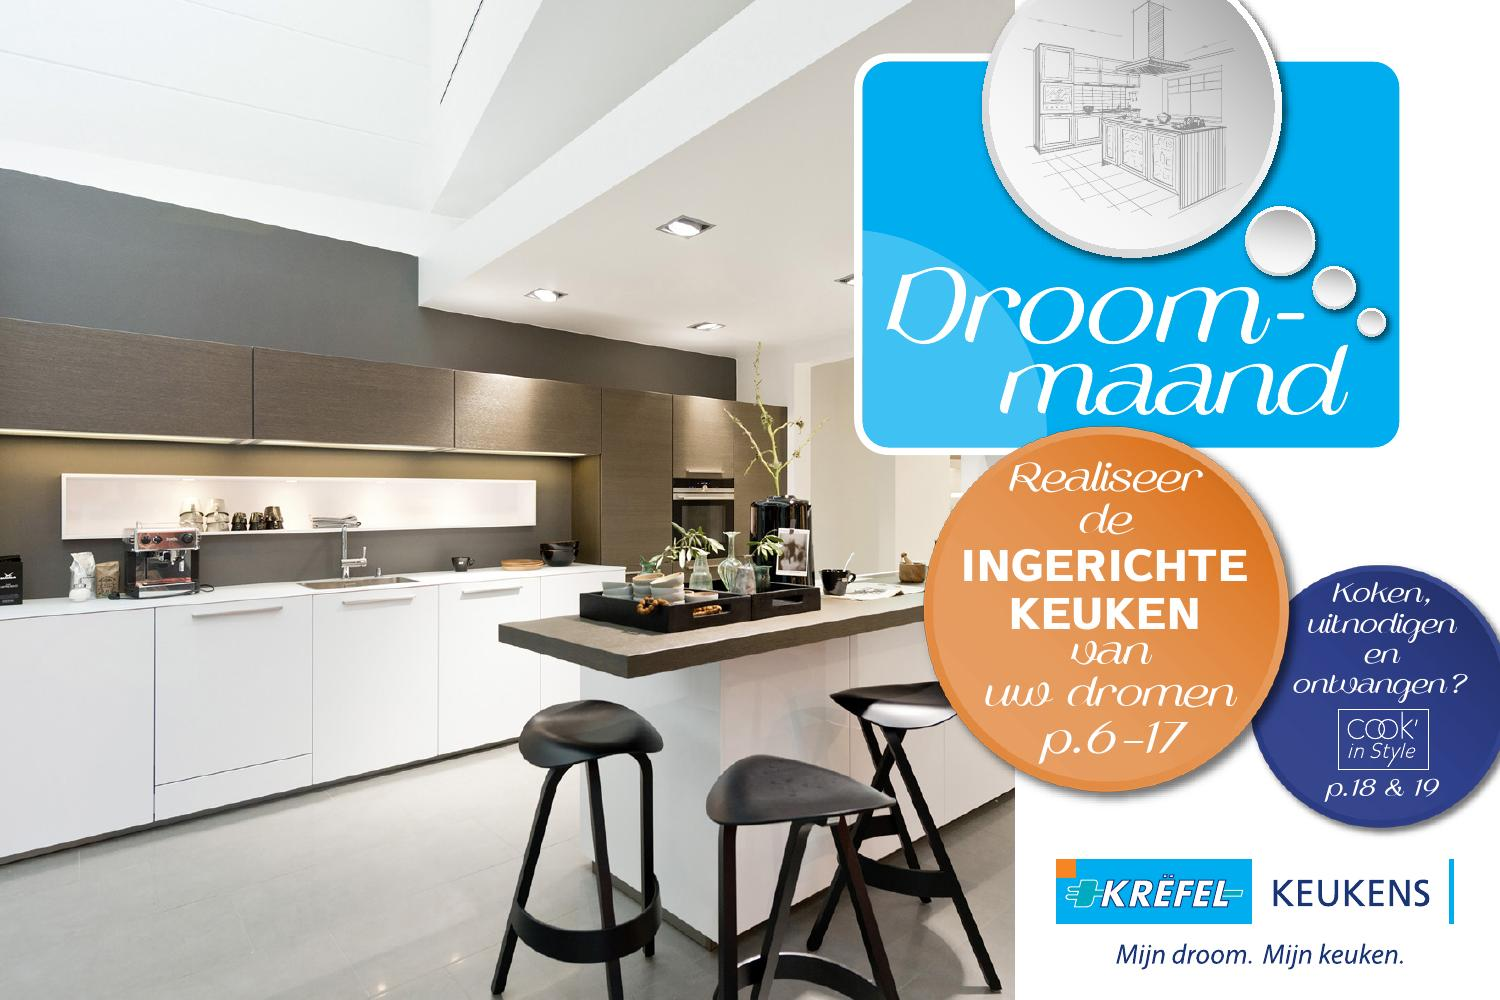 Krëfel Keukens Folder September 2015 by Krëfel - issuu